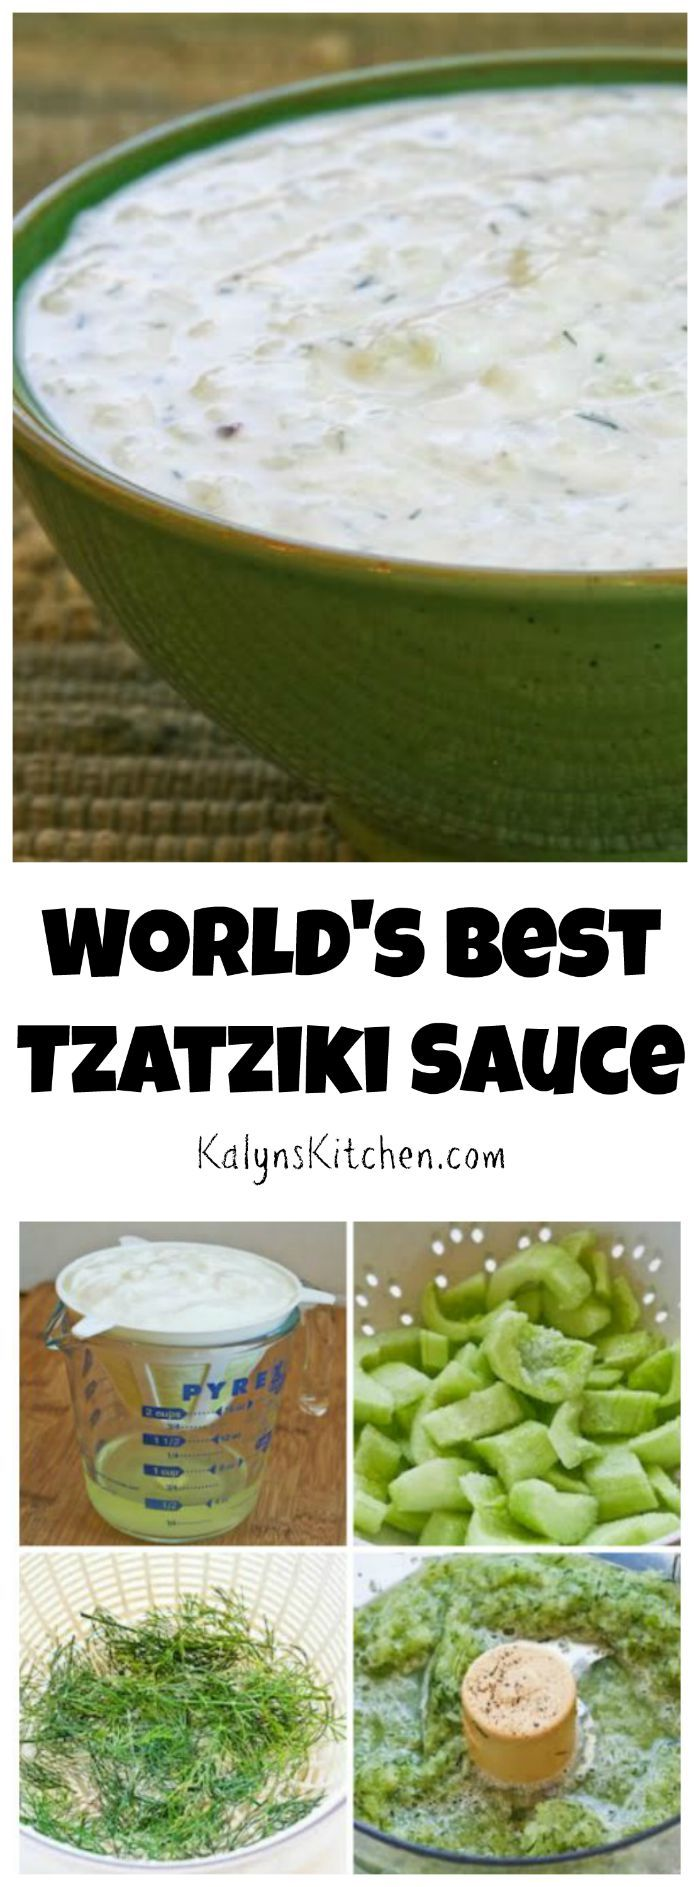 How to Make the World's Best Tzatziki Sauce (Greek Yogurt and Cucumber Sauce)